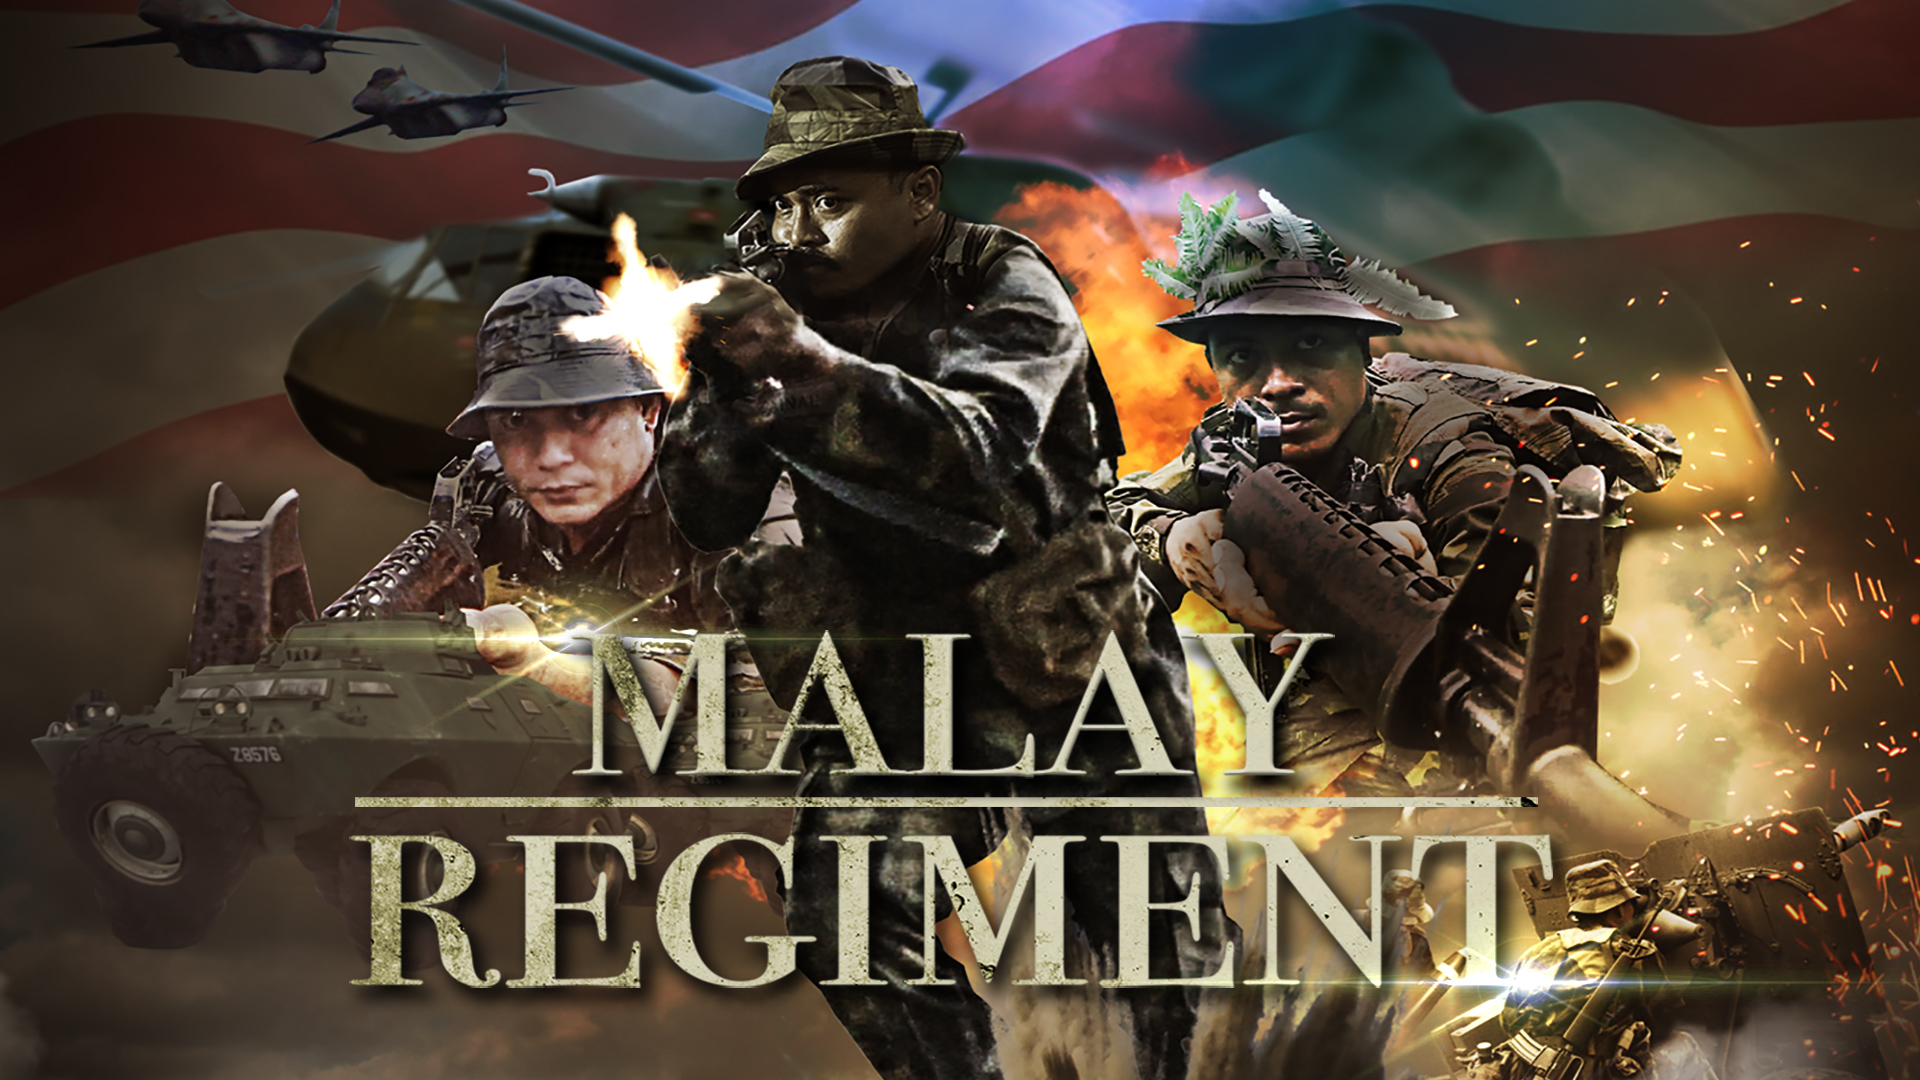 MALAY REGIMENT